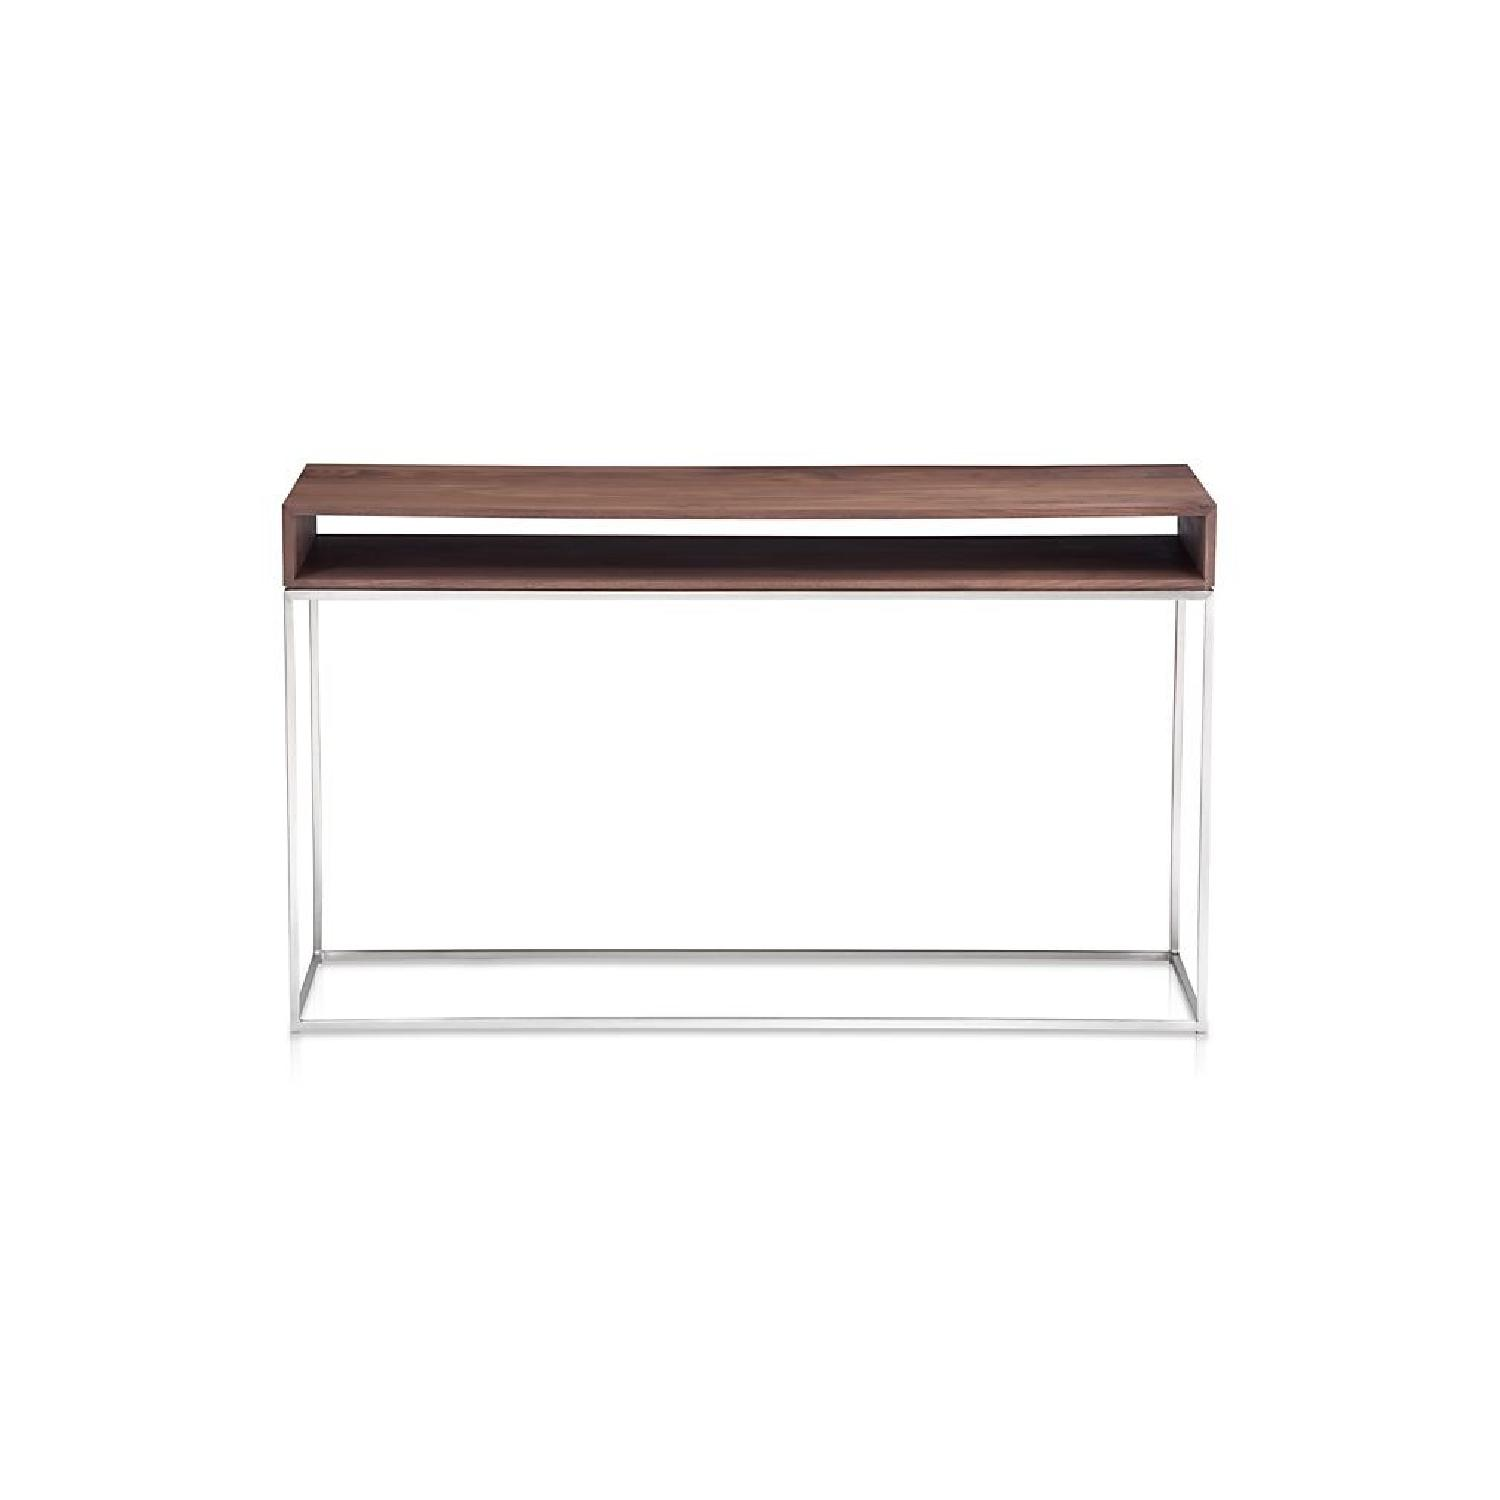 Crate & Barrel Frame Console Table - image-0